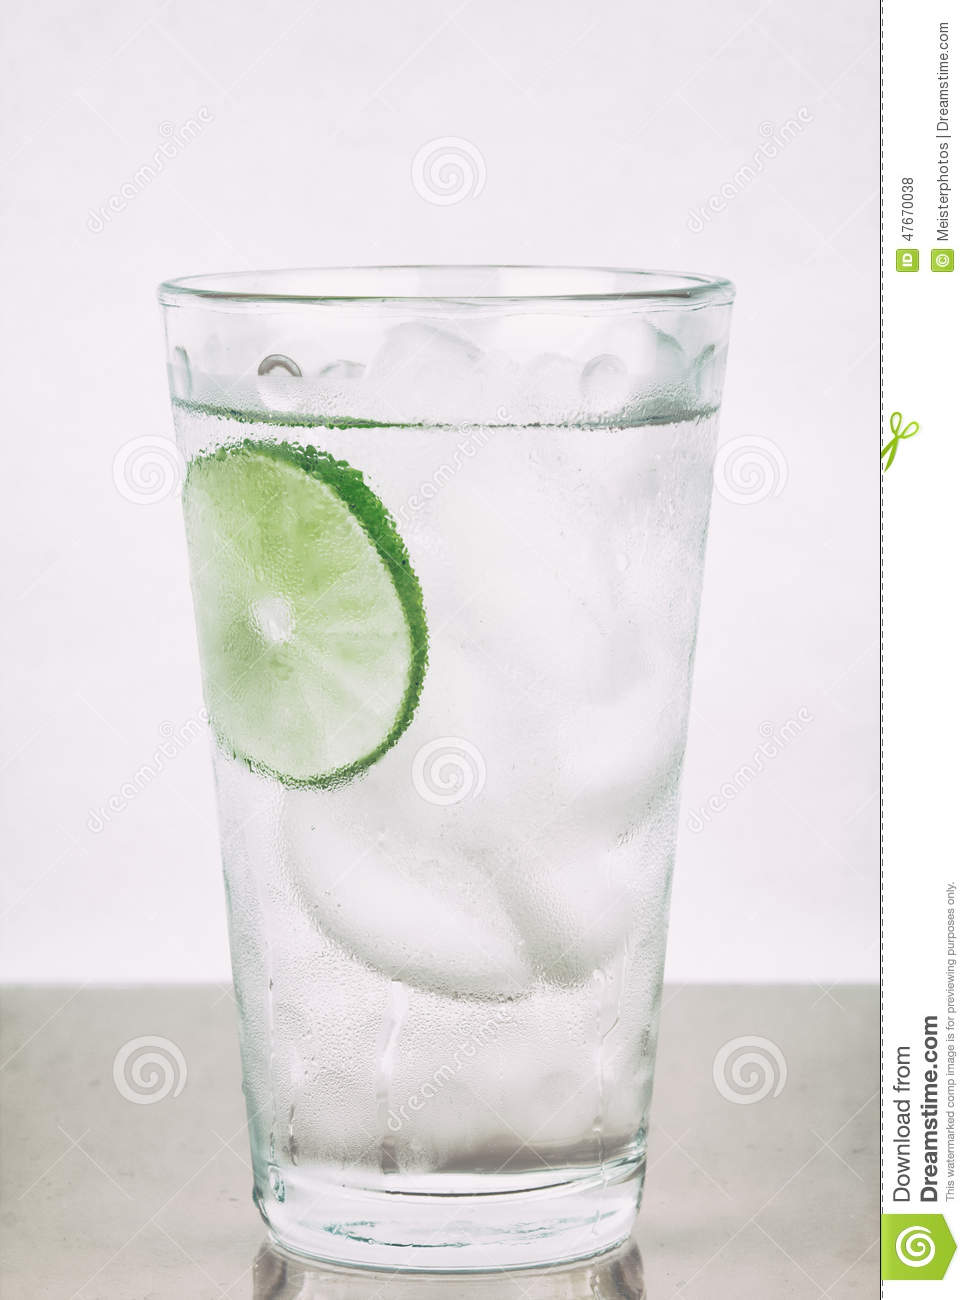 Cold Water In Glass With Lime Stock Photo - Image: 47670038